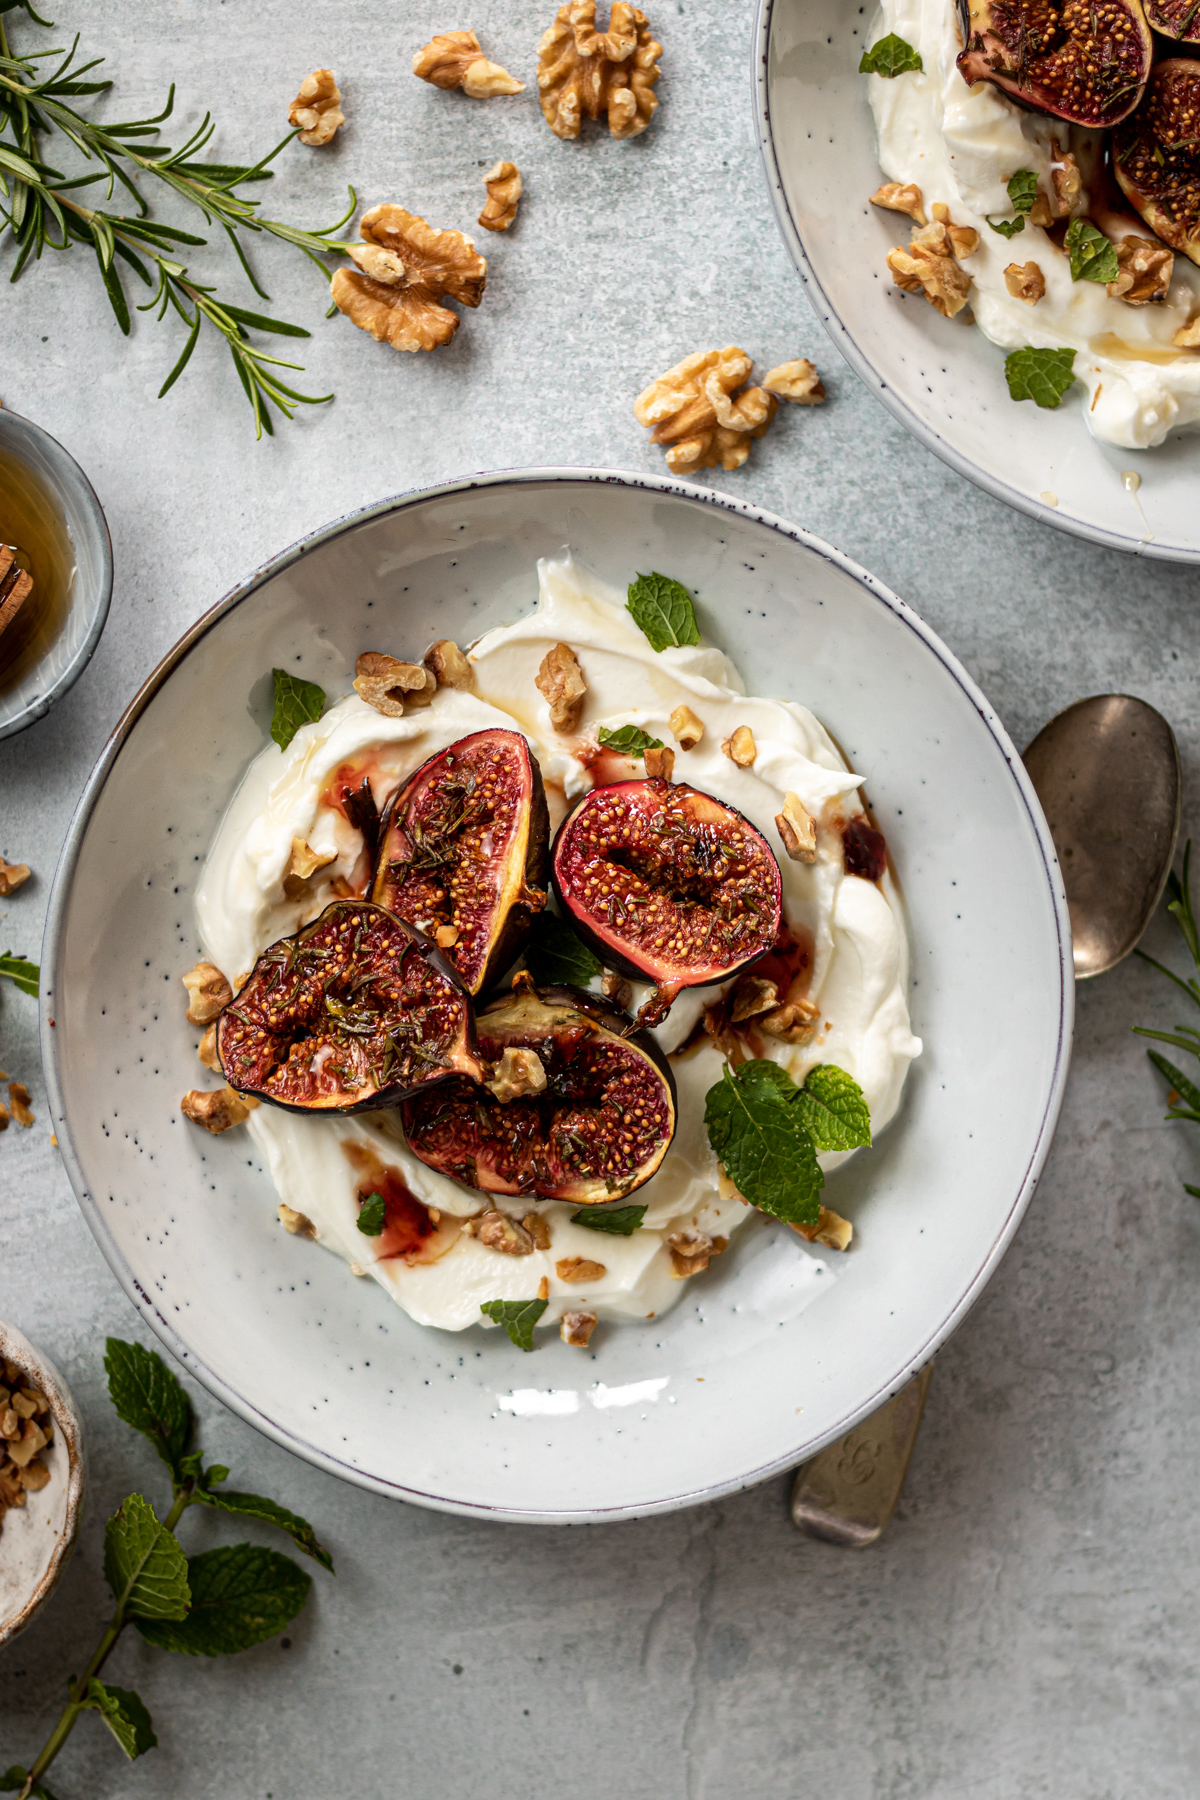 Roasted figs on a bed of yoghurt, topped with chopped walnuts and mint leaves